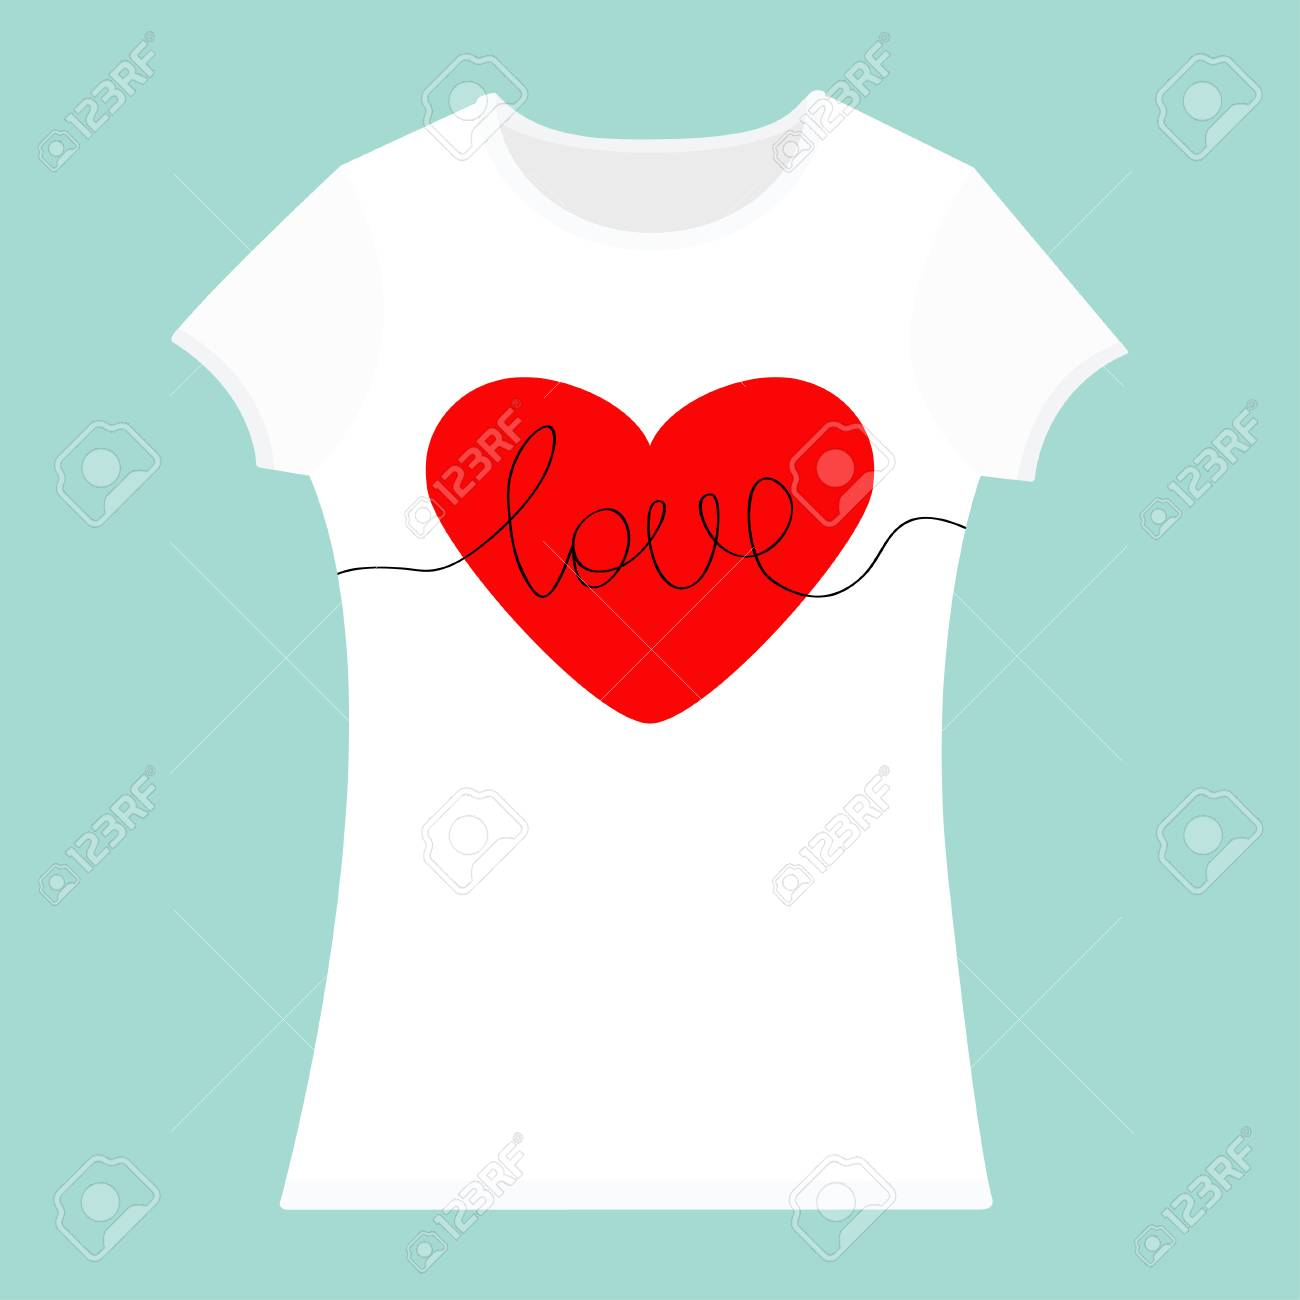 235e6b8bc2d8 Red heart. T-shirt template. White color. Woman model. T shirt mockup.  Front side. Flat design. Isolated. Blue background. Vector illustration